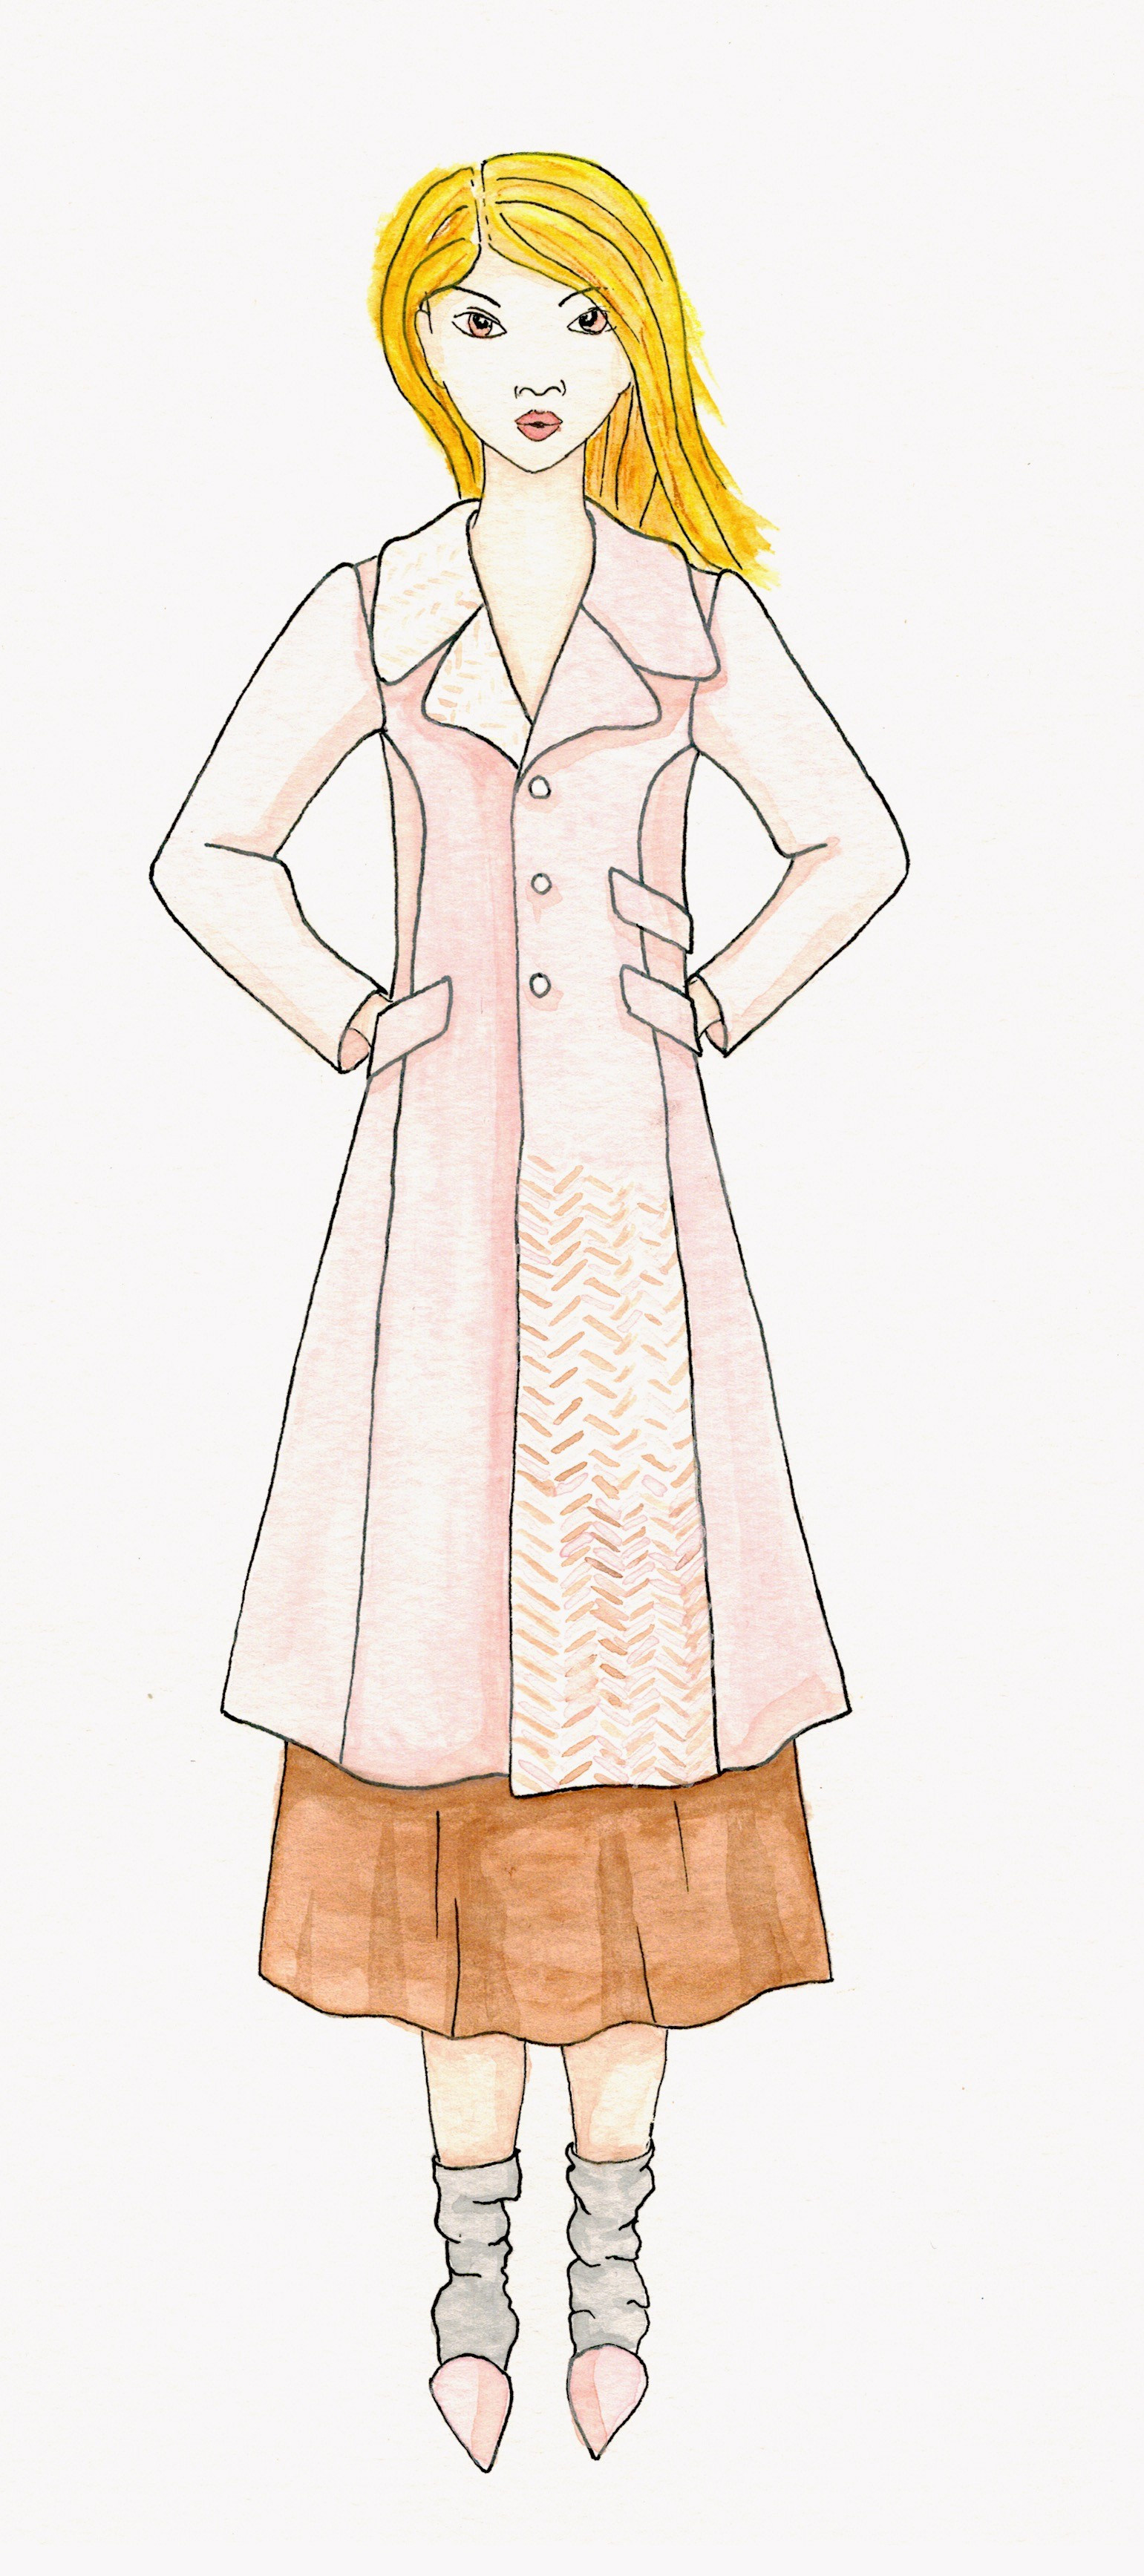 Meris mullaley fashion watercolor pink coat